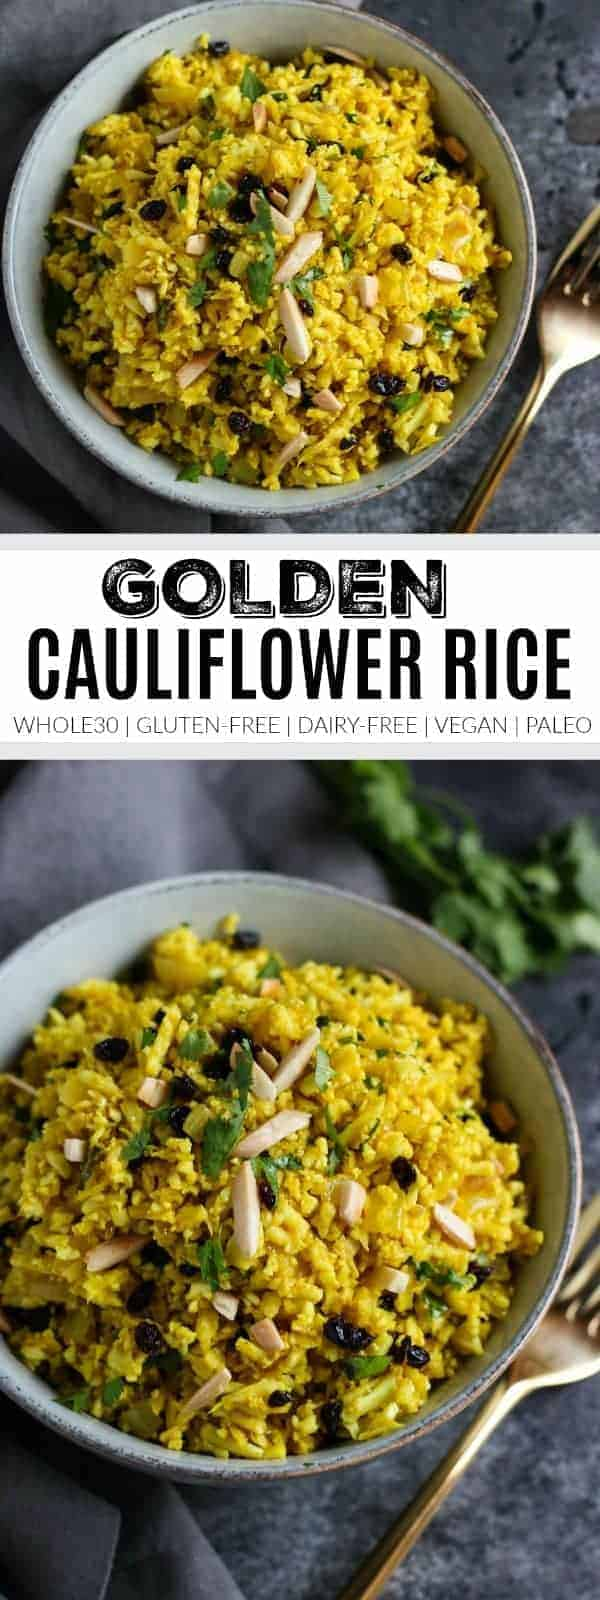 Golden Cauliflower Rice | how to cook cauliflower rice | cauliflower rice recipes | whole30 side dishes | gluten-free side dishes | dairy-free side dishes | vegan side dishes | paleo side dishes | gluten-free cauliflower rice | whole30 recipe ideas || The Real Food Dietitians #whole30recipes